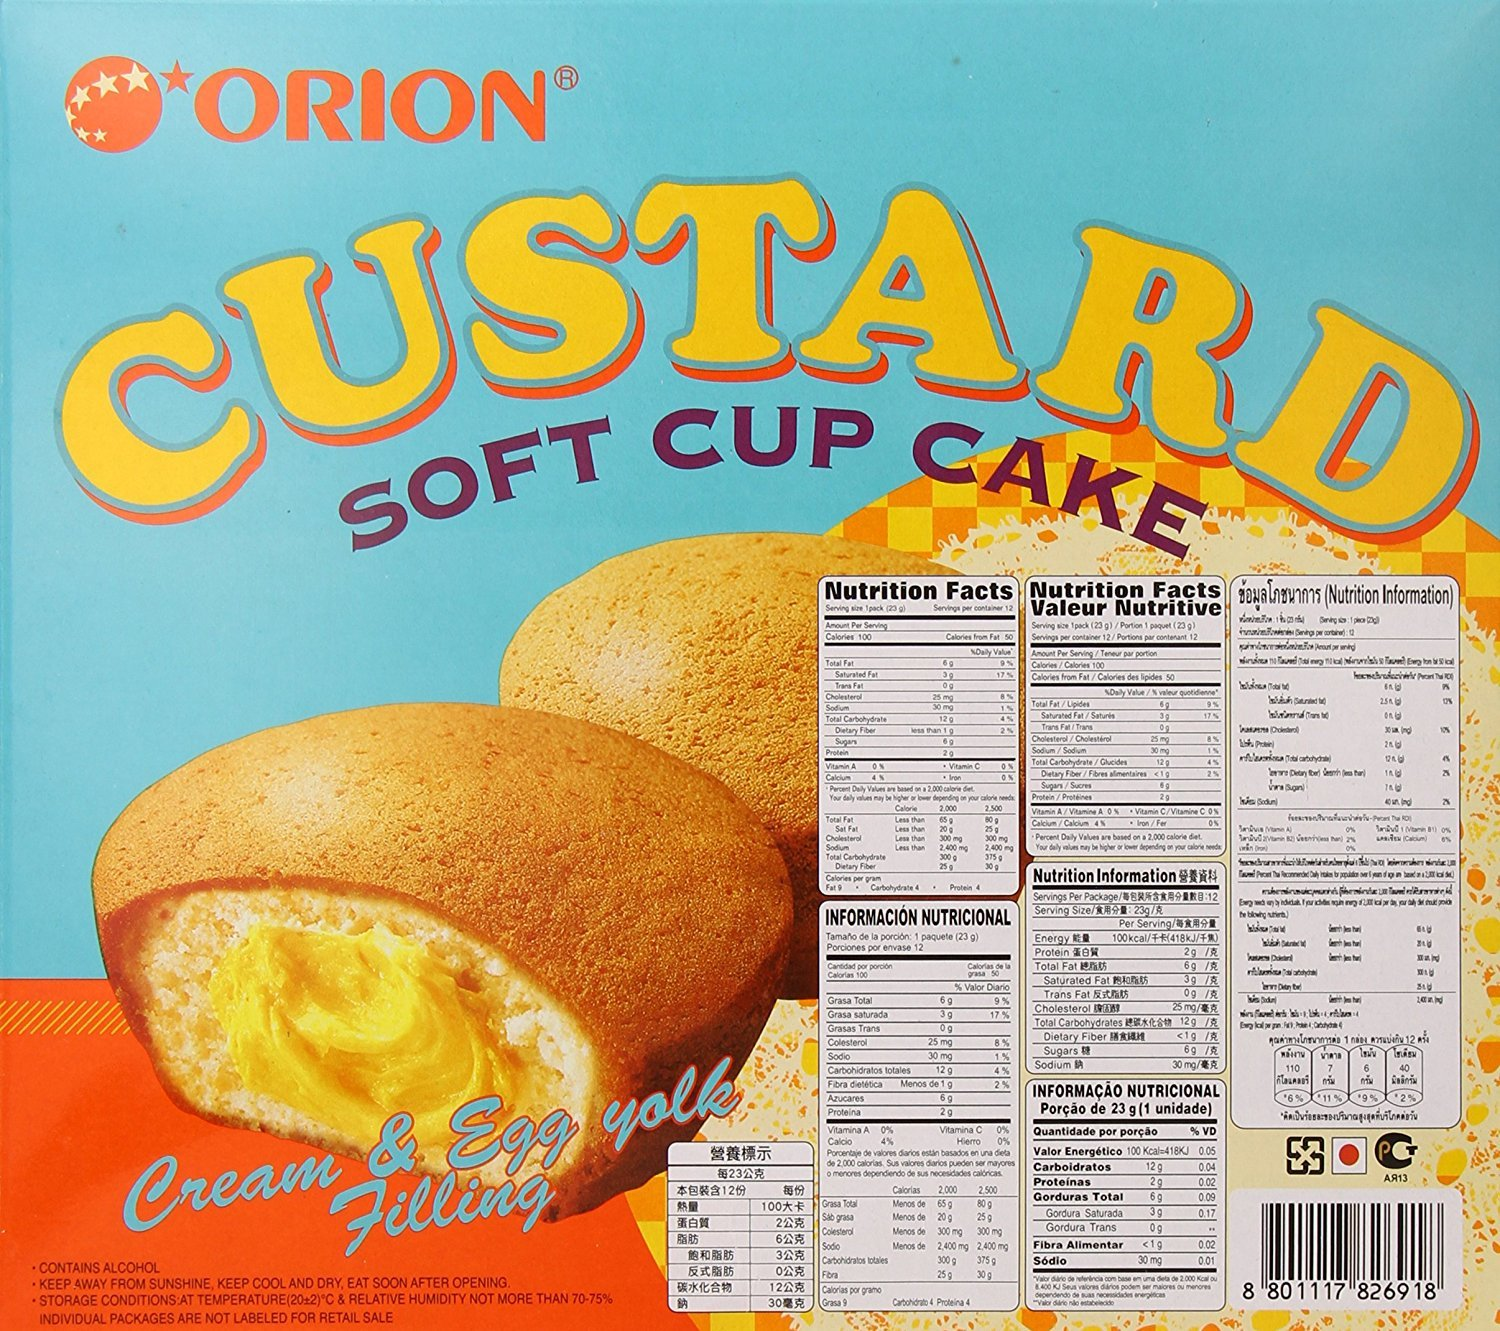 Orion Custard Filled Fruit Cake Soft Cupcake Dessert (12 Pieces) by Orion (Image #2)